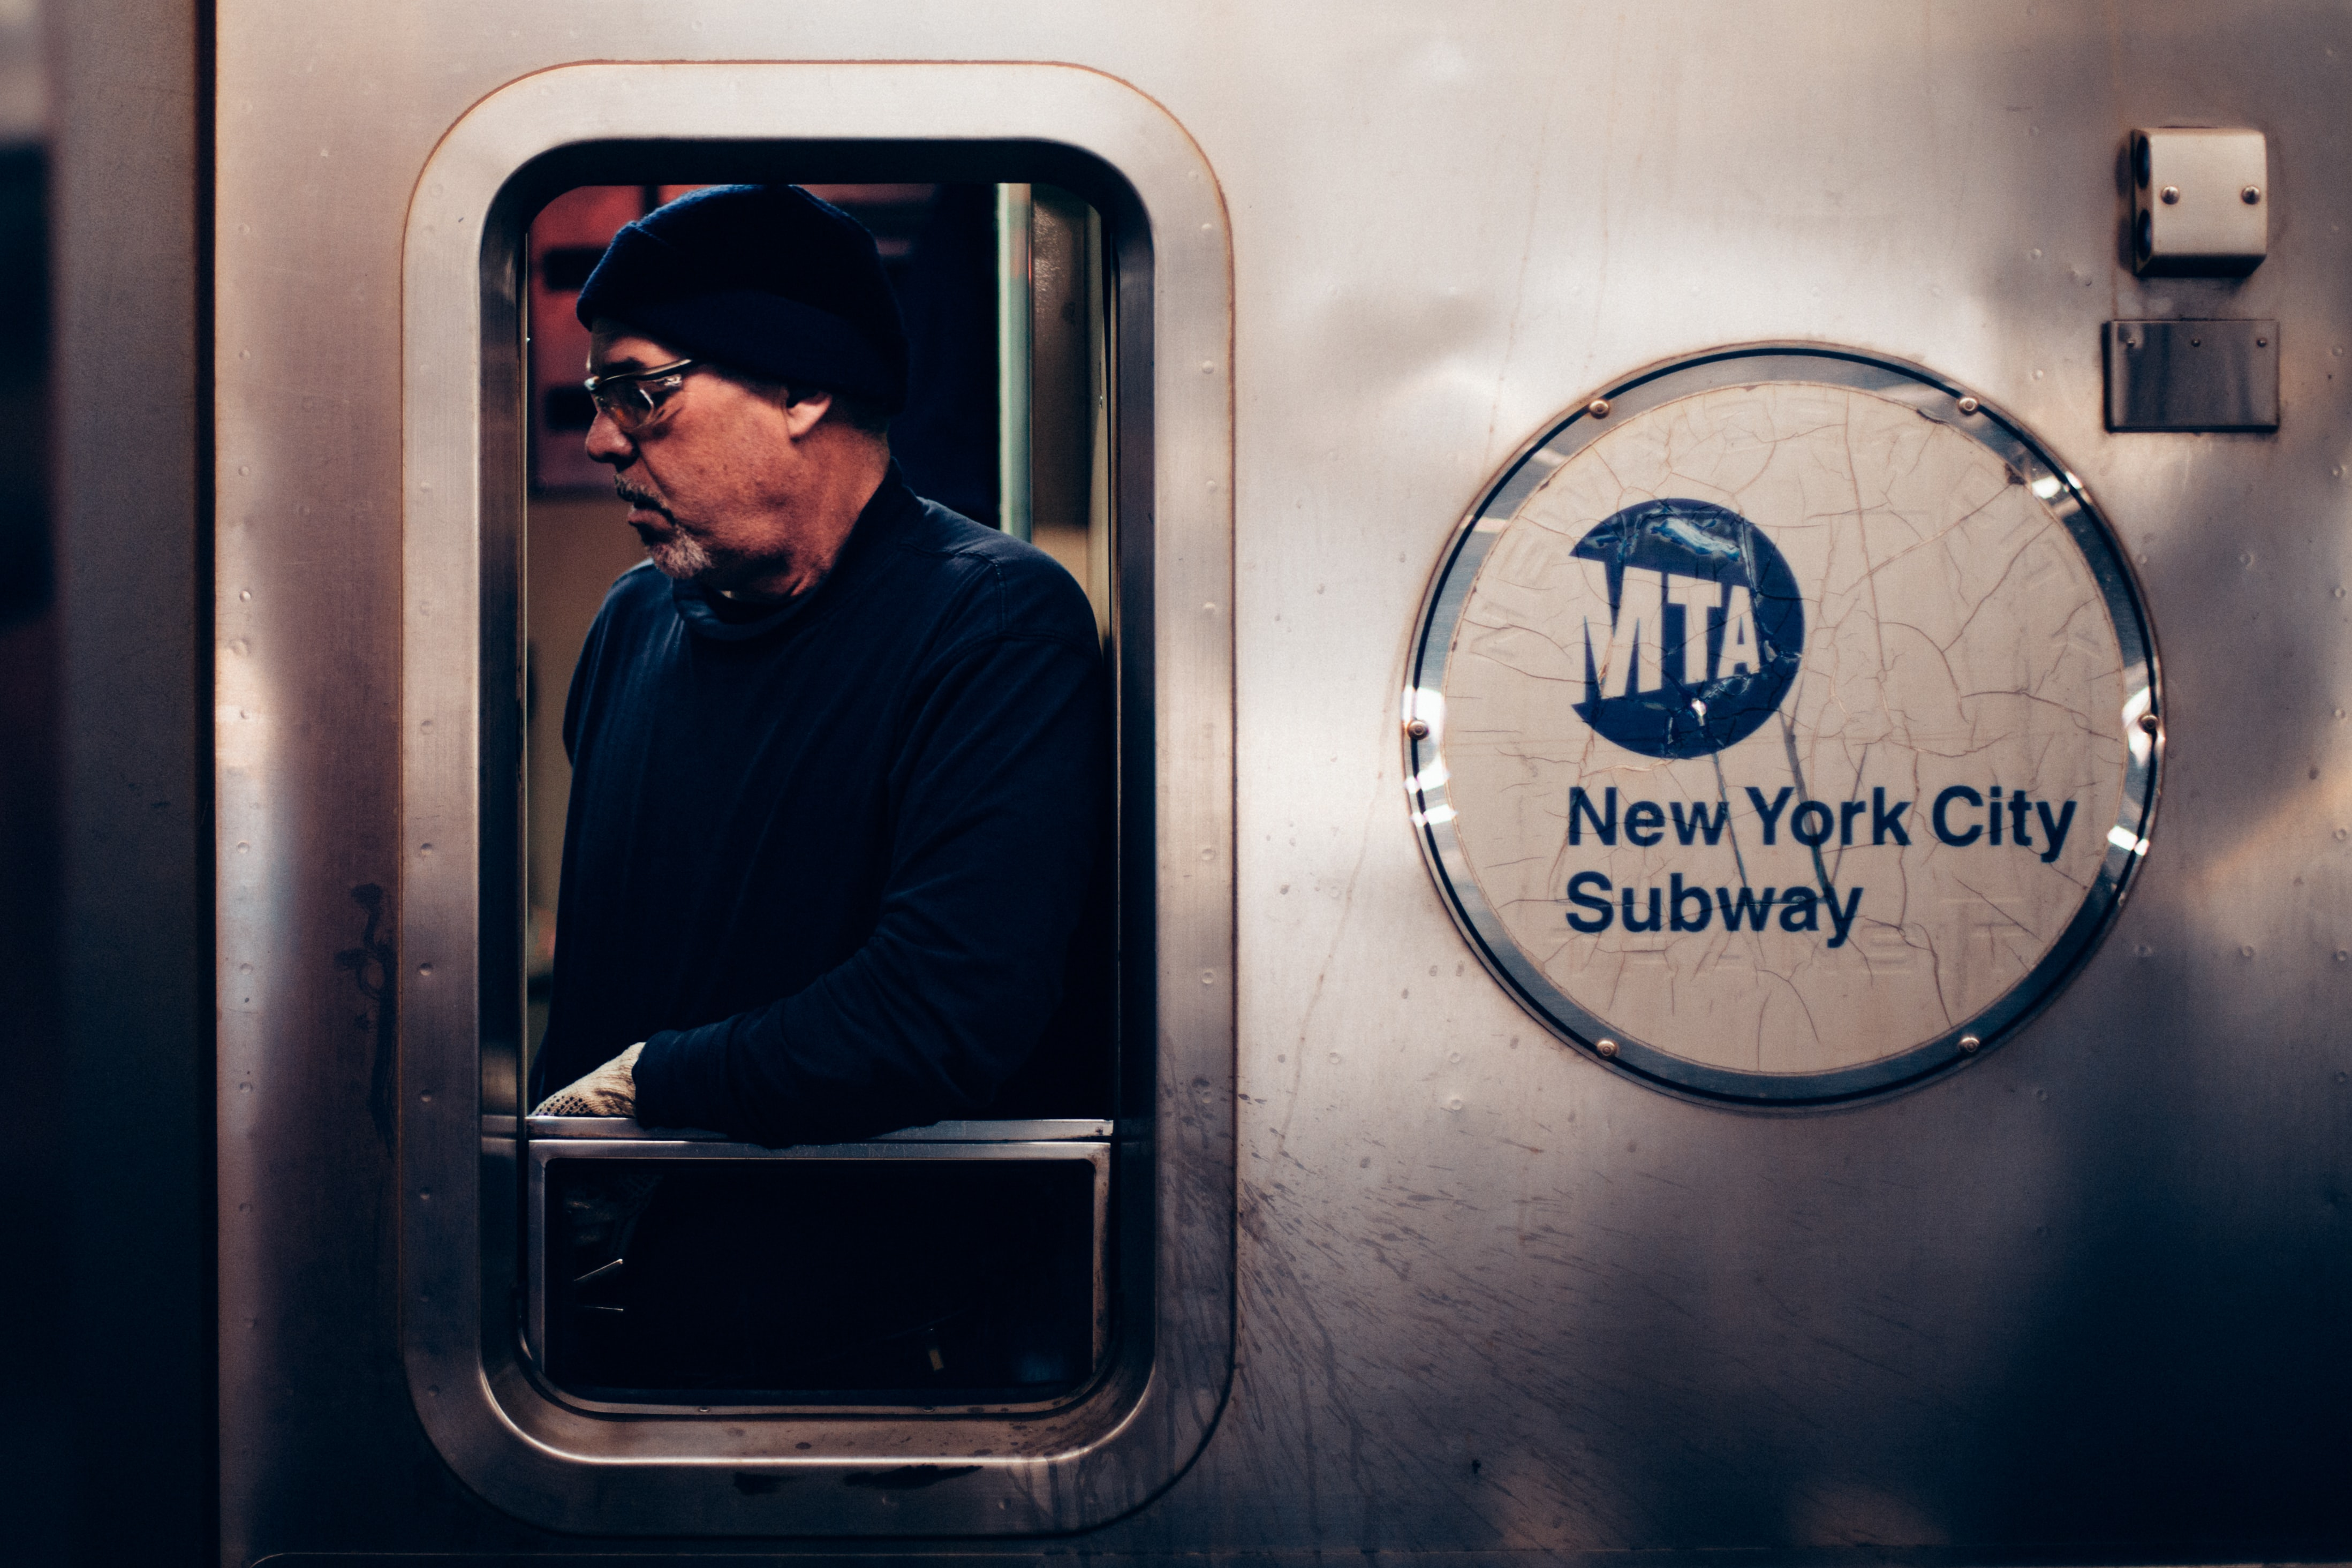 A middle-aged man in glasses and a beanie seen through a window of a subway train